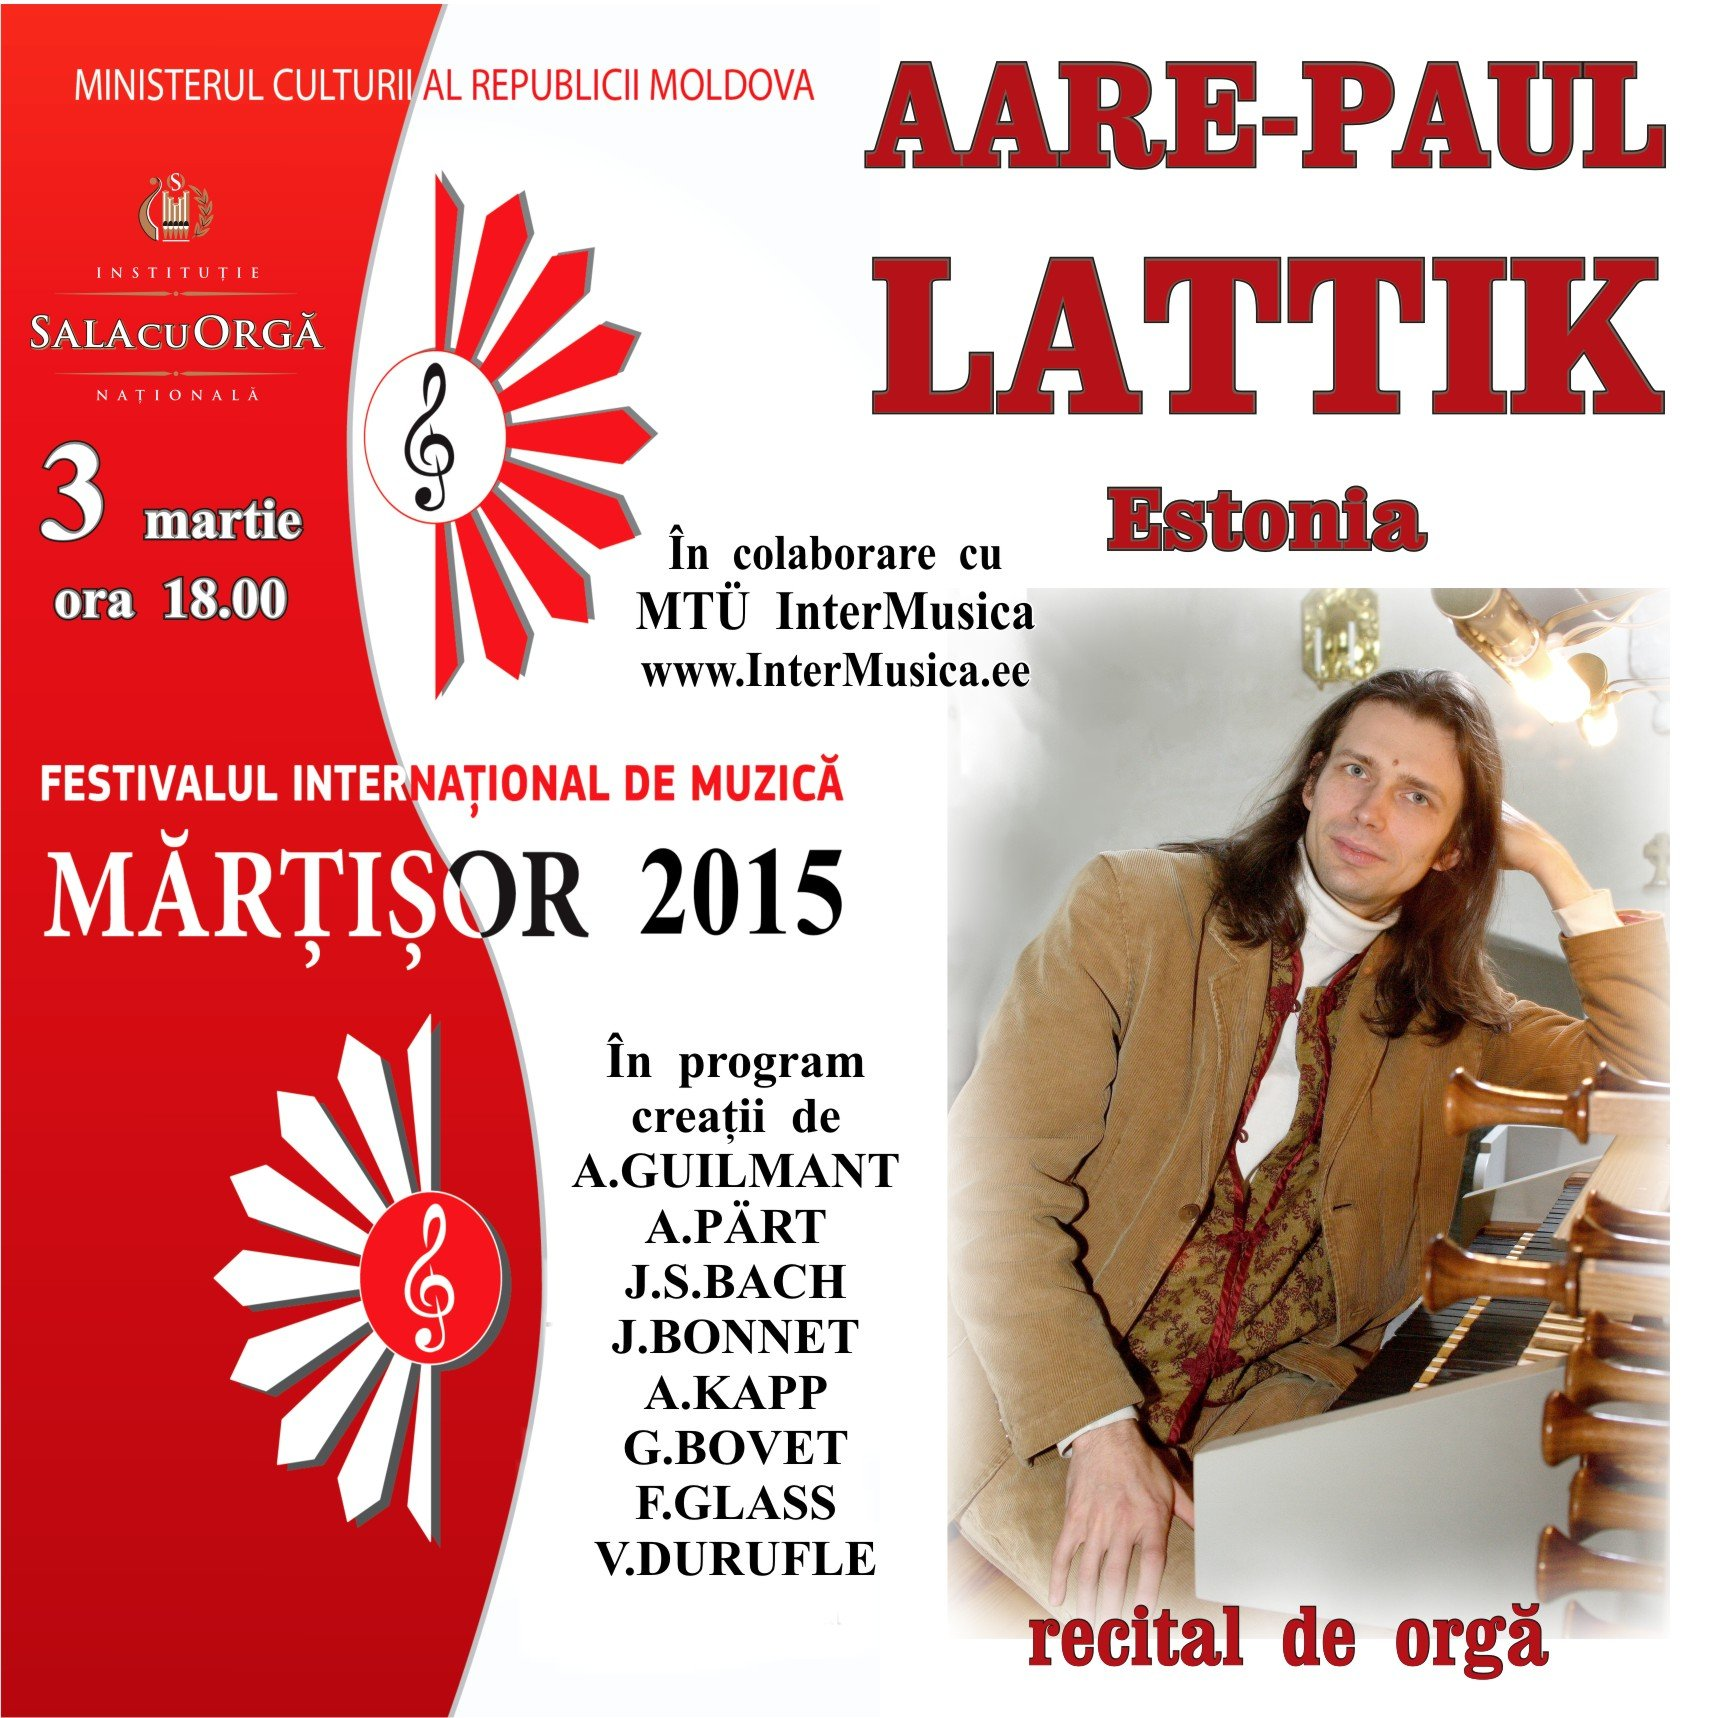 Aare-Paul Lattik